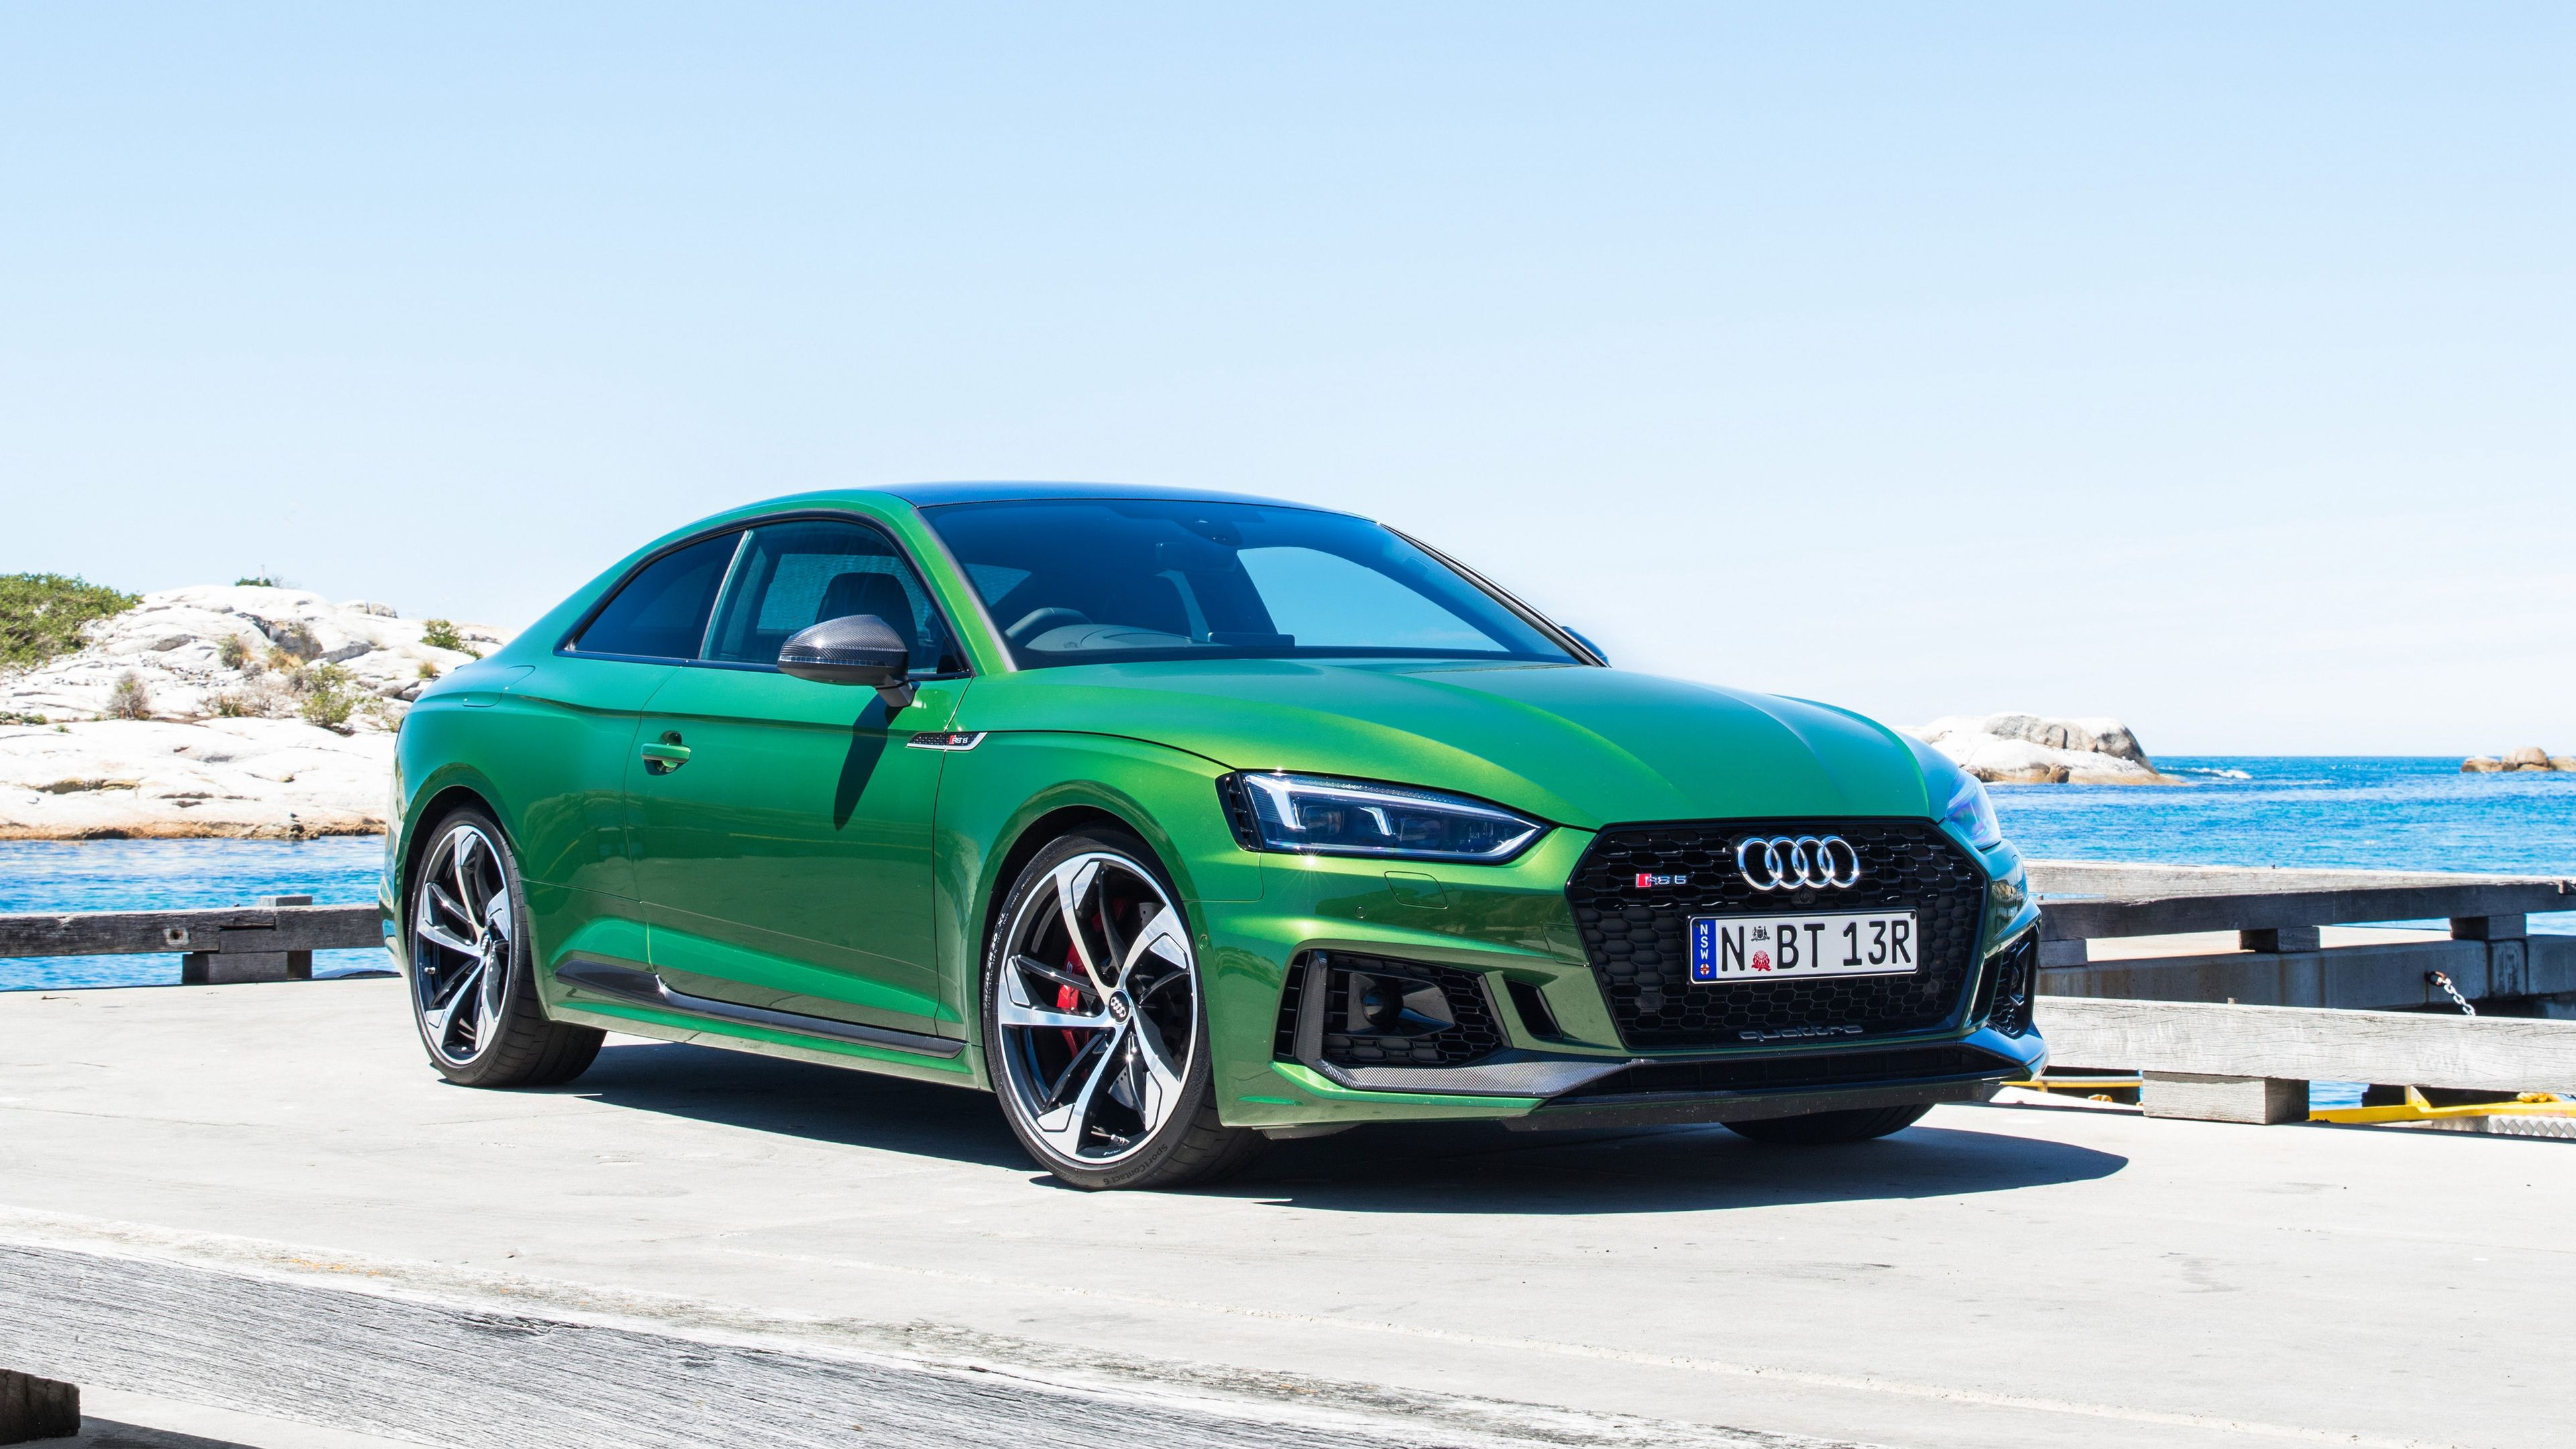 Audi Rs5 Coupe 4k Hd Wallpapers Cars Wallpapers Audi Wallpapers Audi Rs5 Wallpapers 4k Wallpapers Audi Wallpapers Rs5 Coupe Audi Rs5 Wallpaper